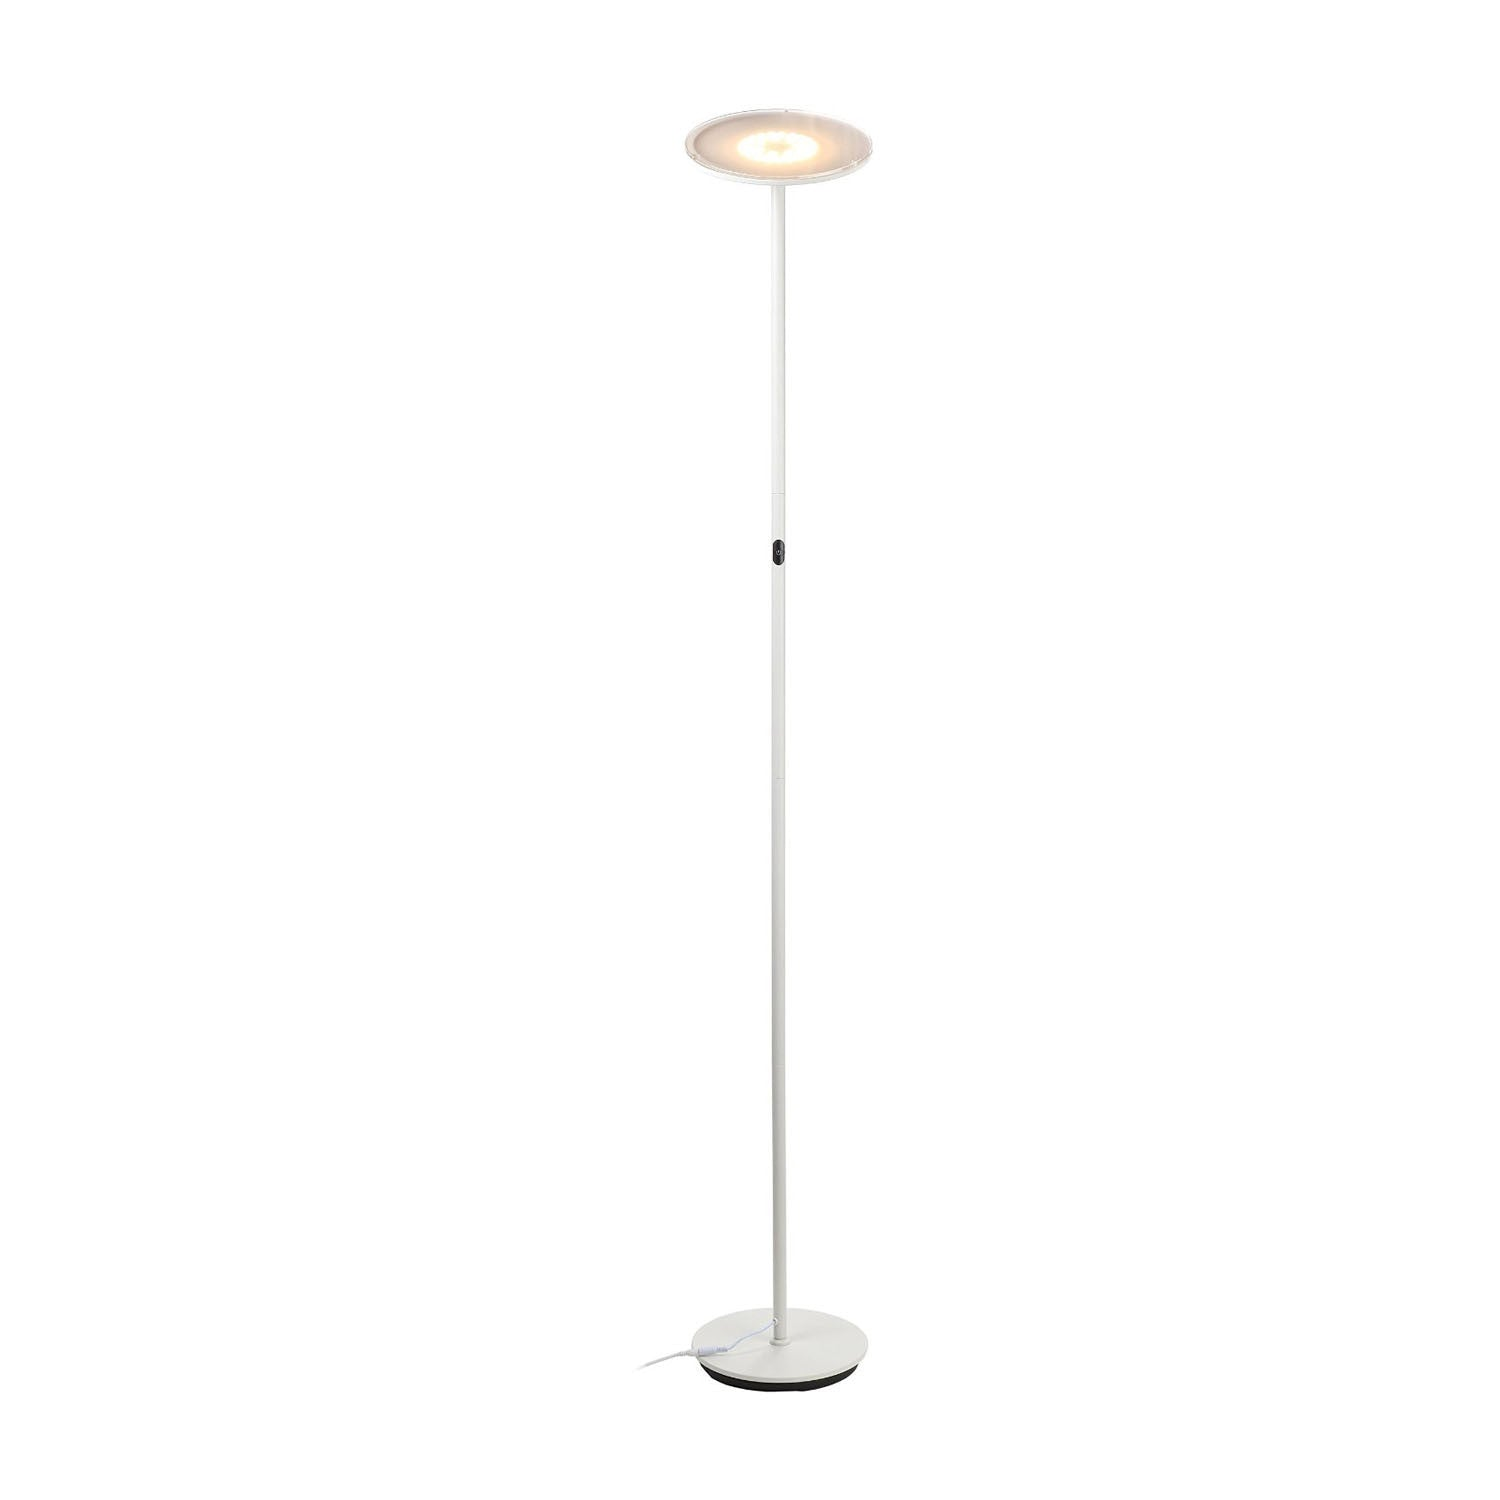 brightech store  sky led torchiere floor lamp – dimmable super  - brightech store  sky led torchiere floor lamp – dimmable super brightwatt led – warm white color – omnidirectional head – sleek white finish